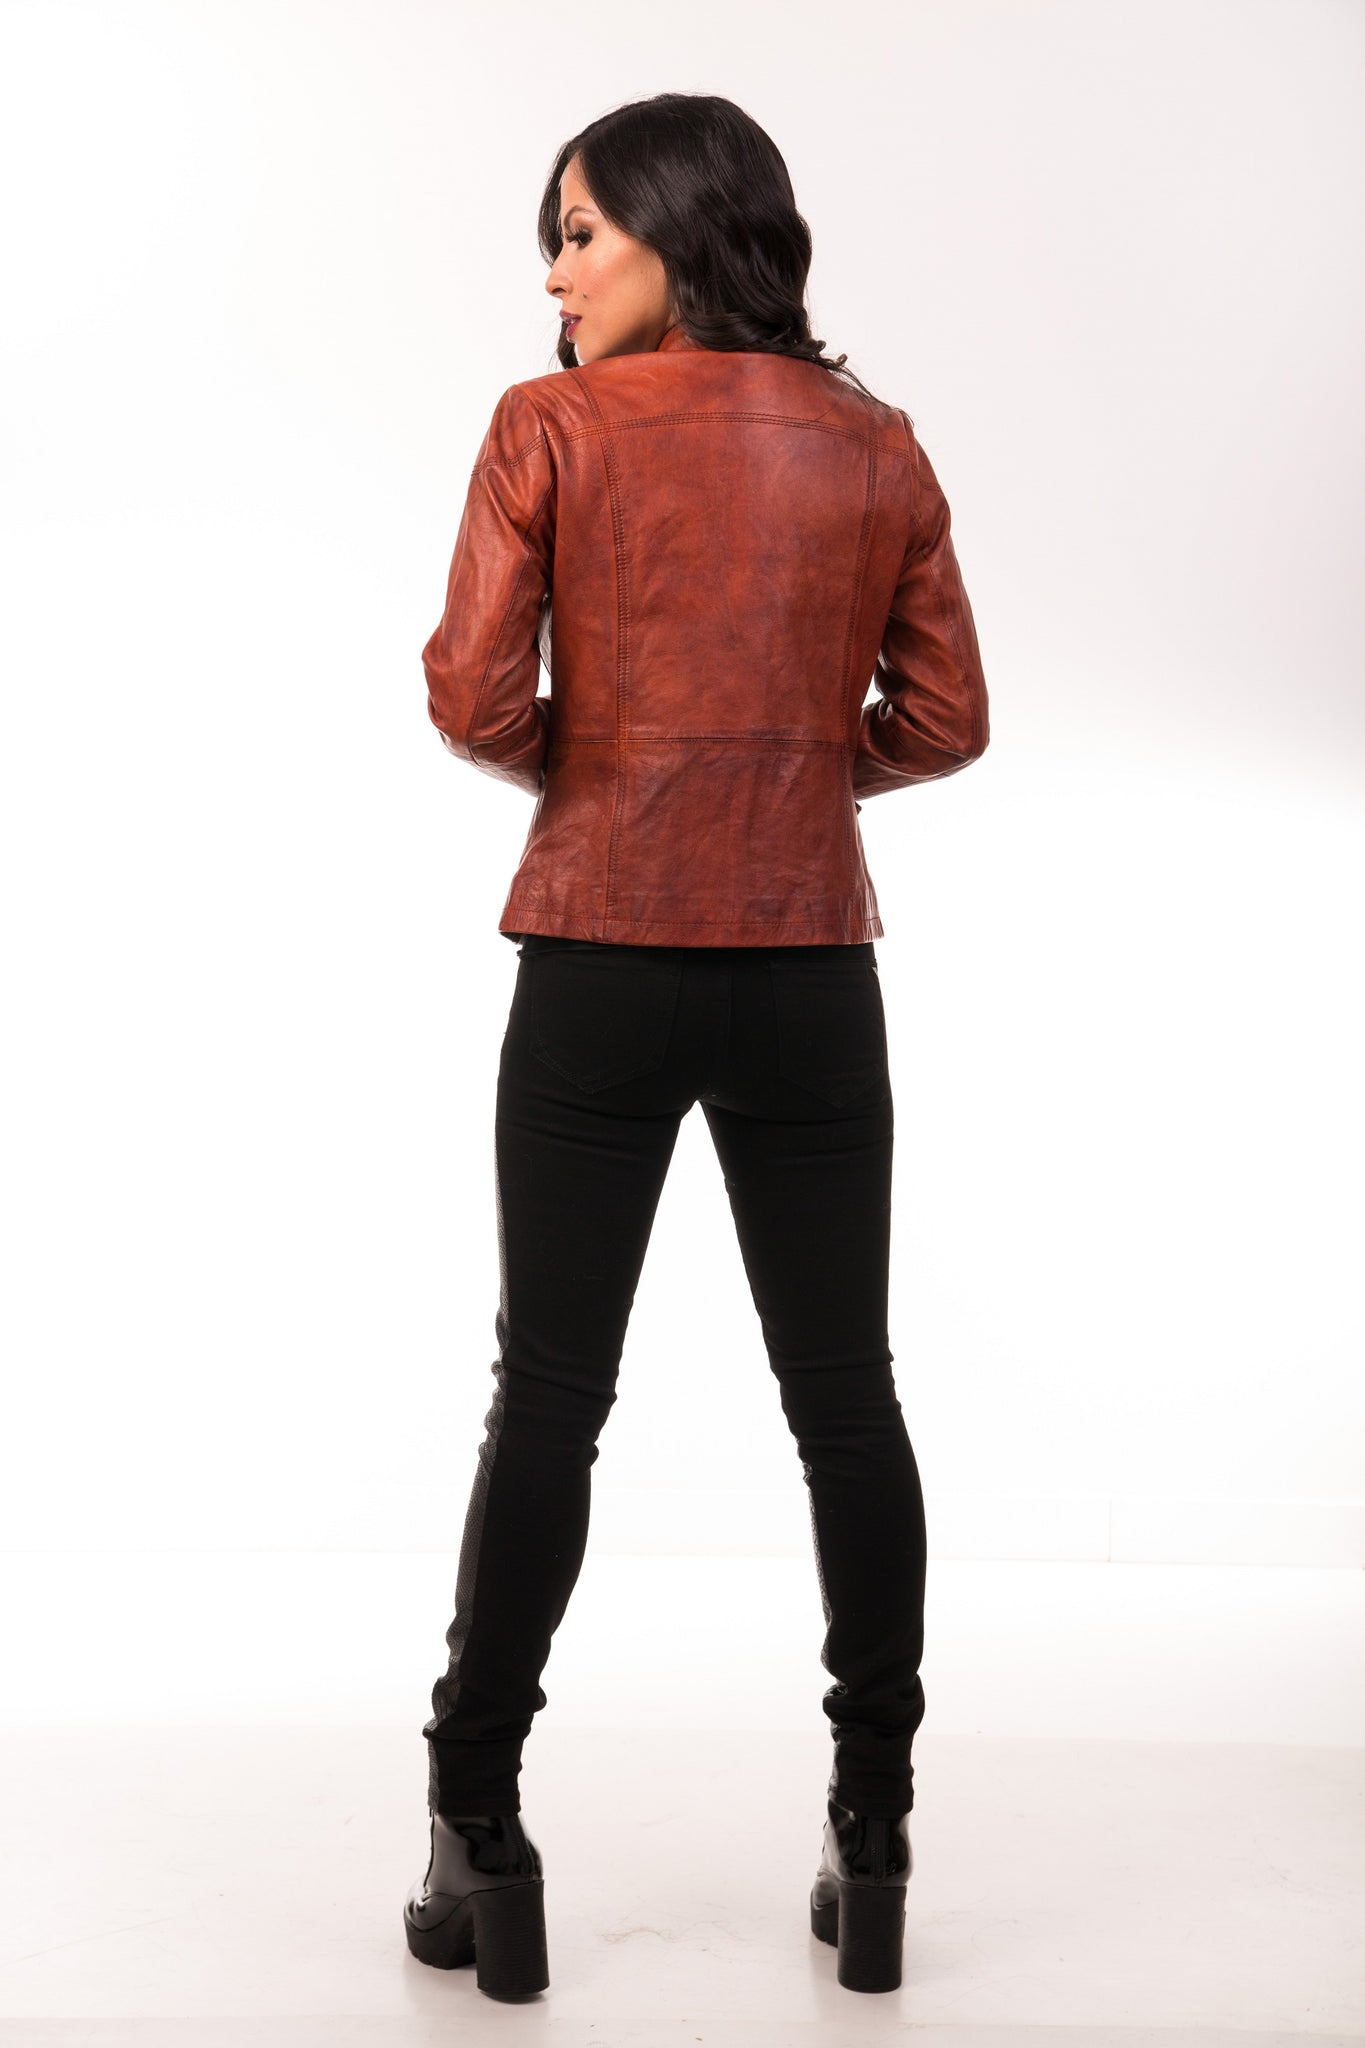 Meghan Biodegradable & Vegetable Dyed Leather Jacket in Deep Cognac